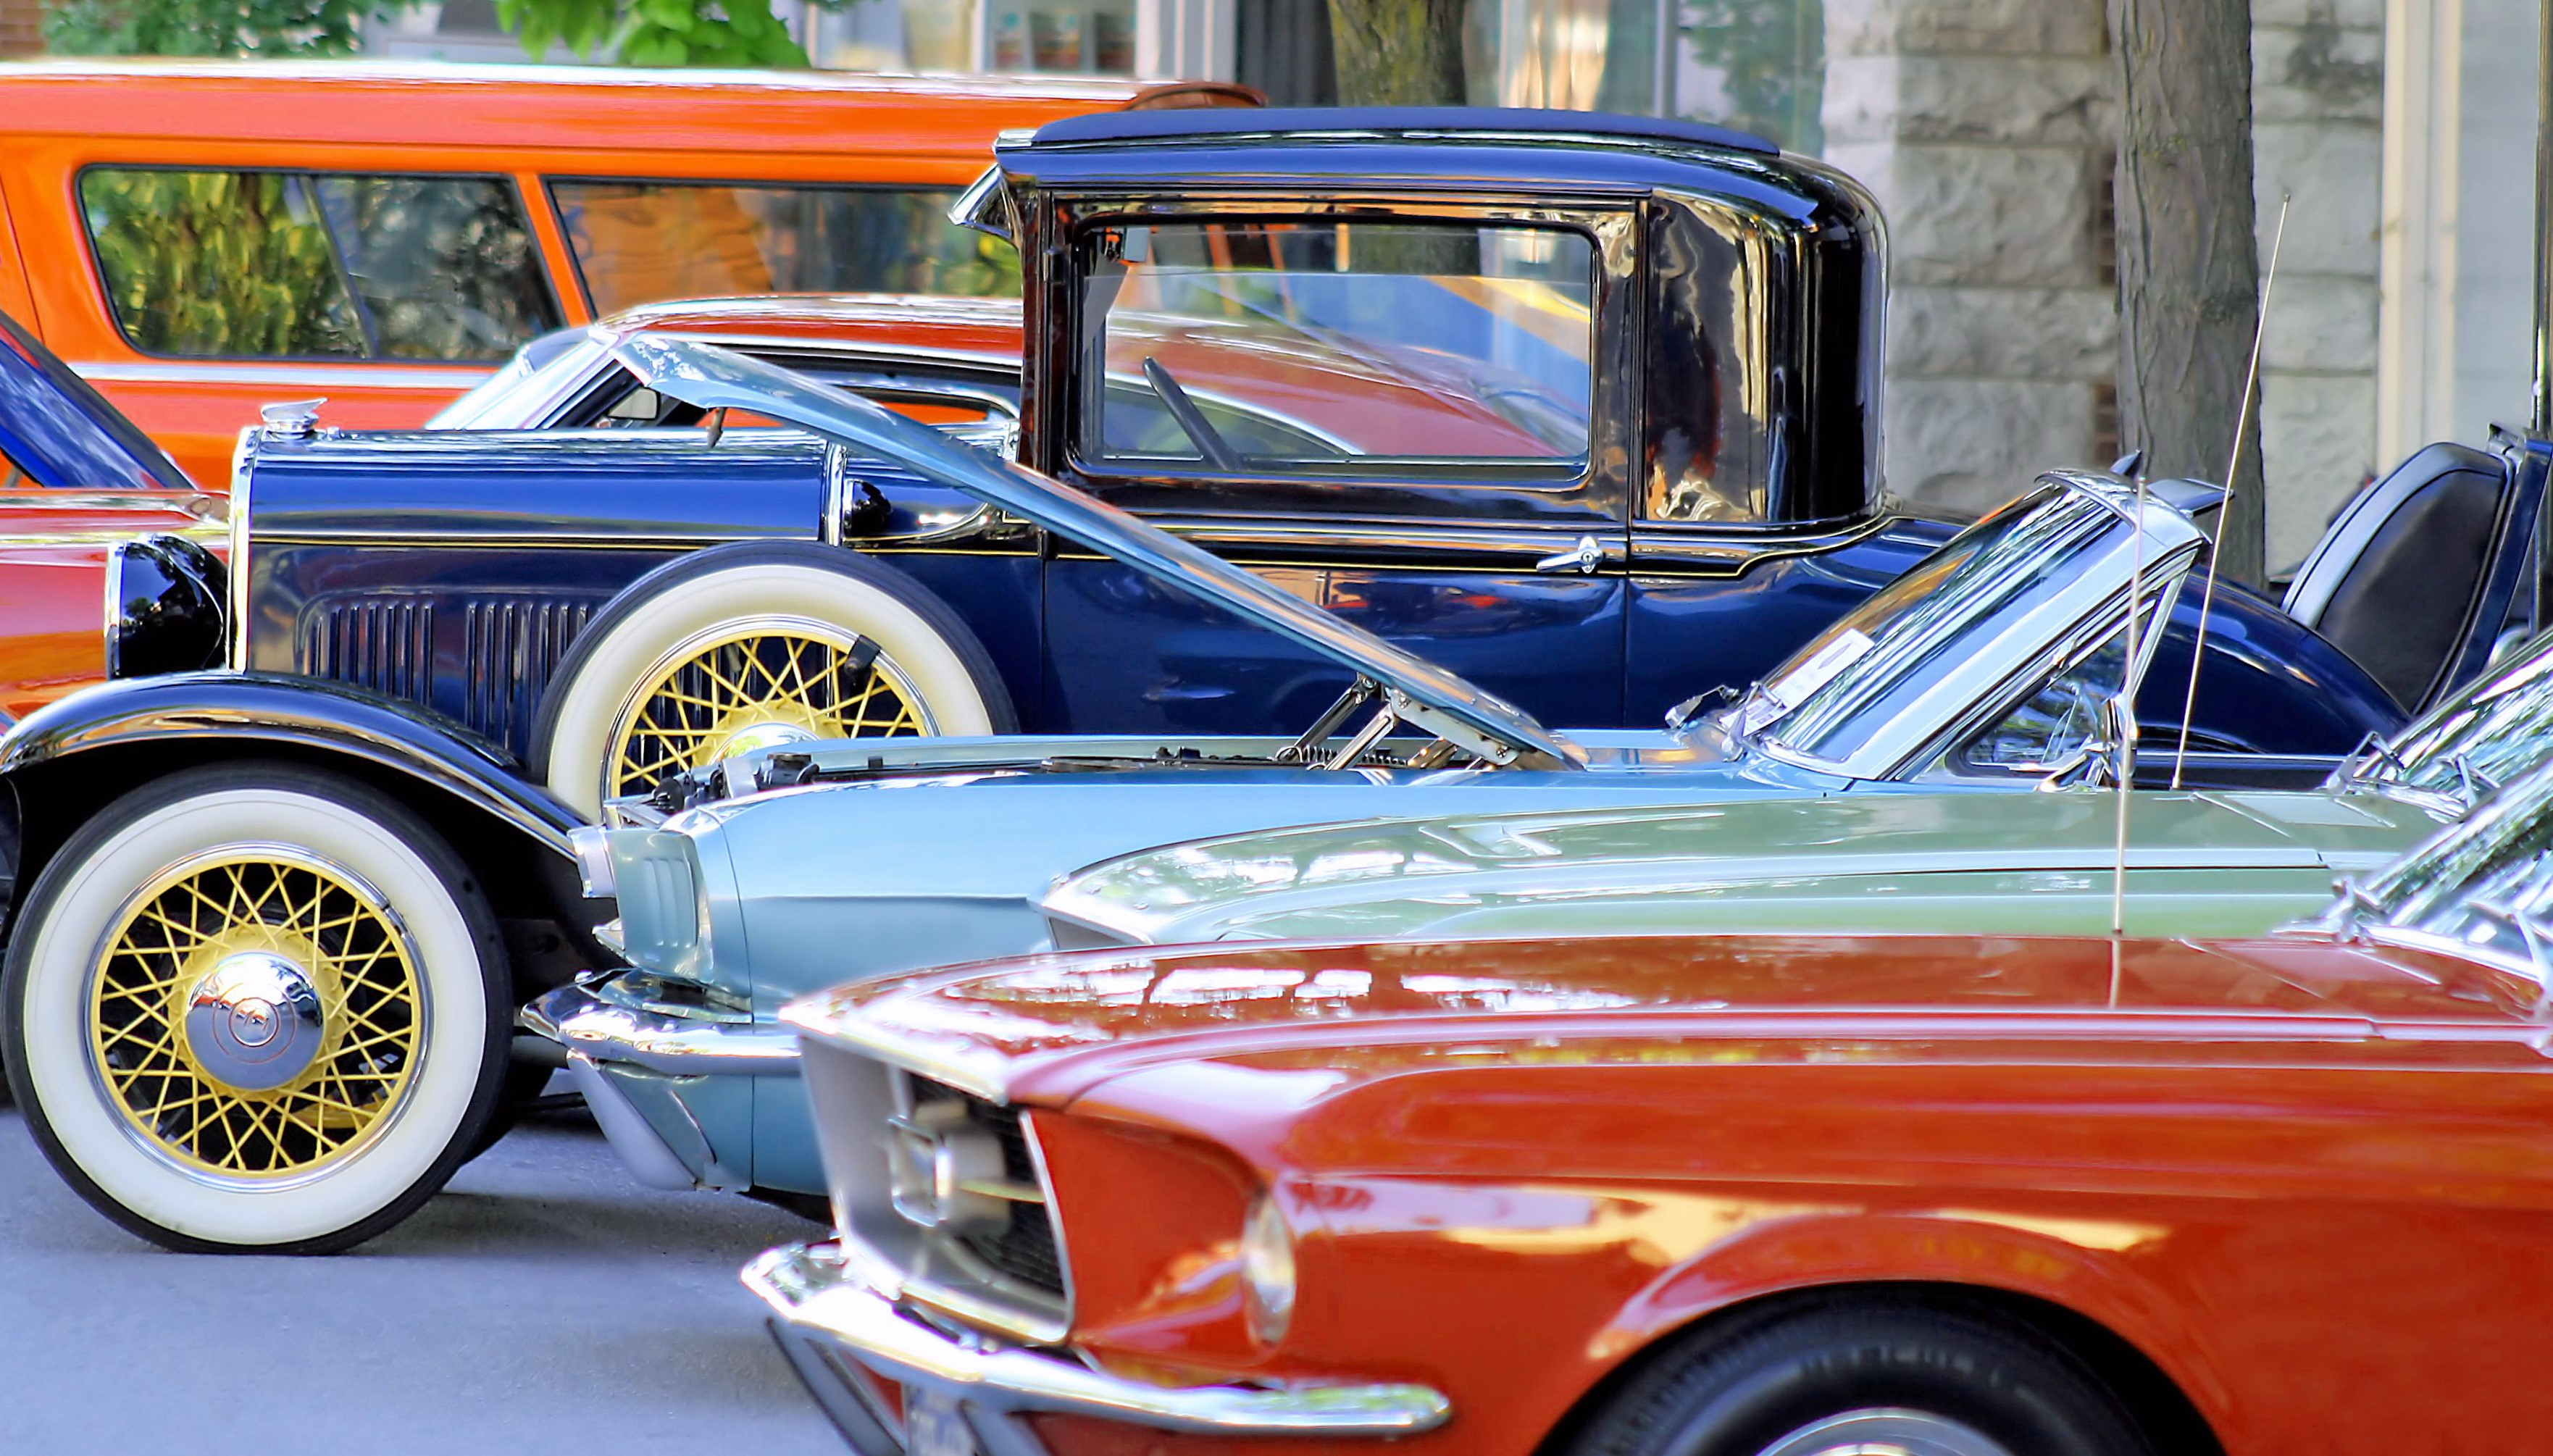 The Government announced MOT exemption for classic cars in September